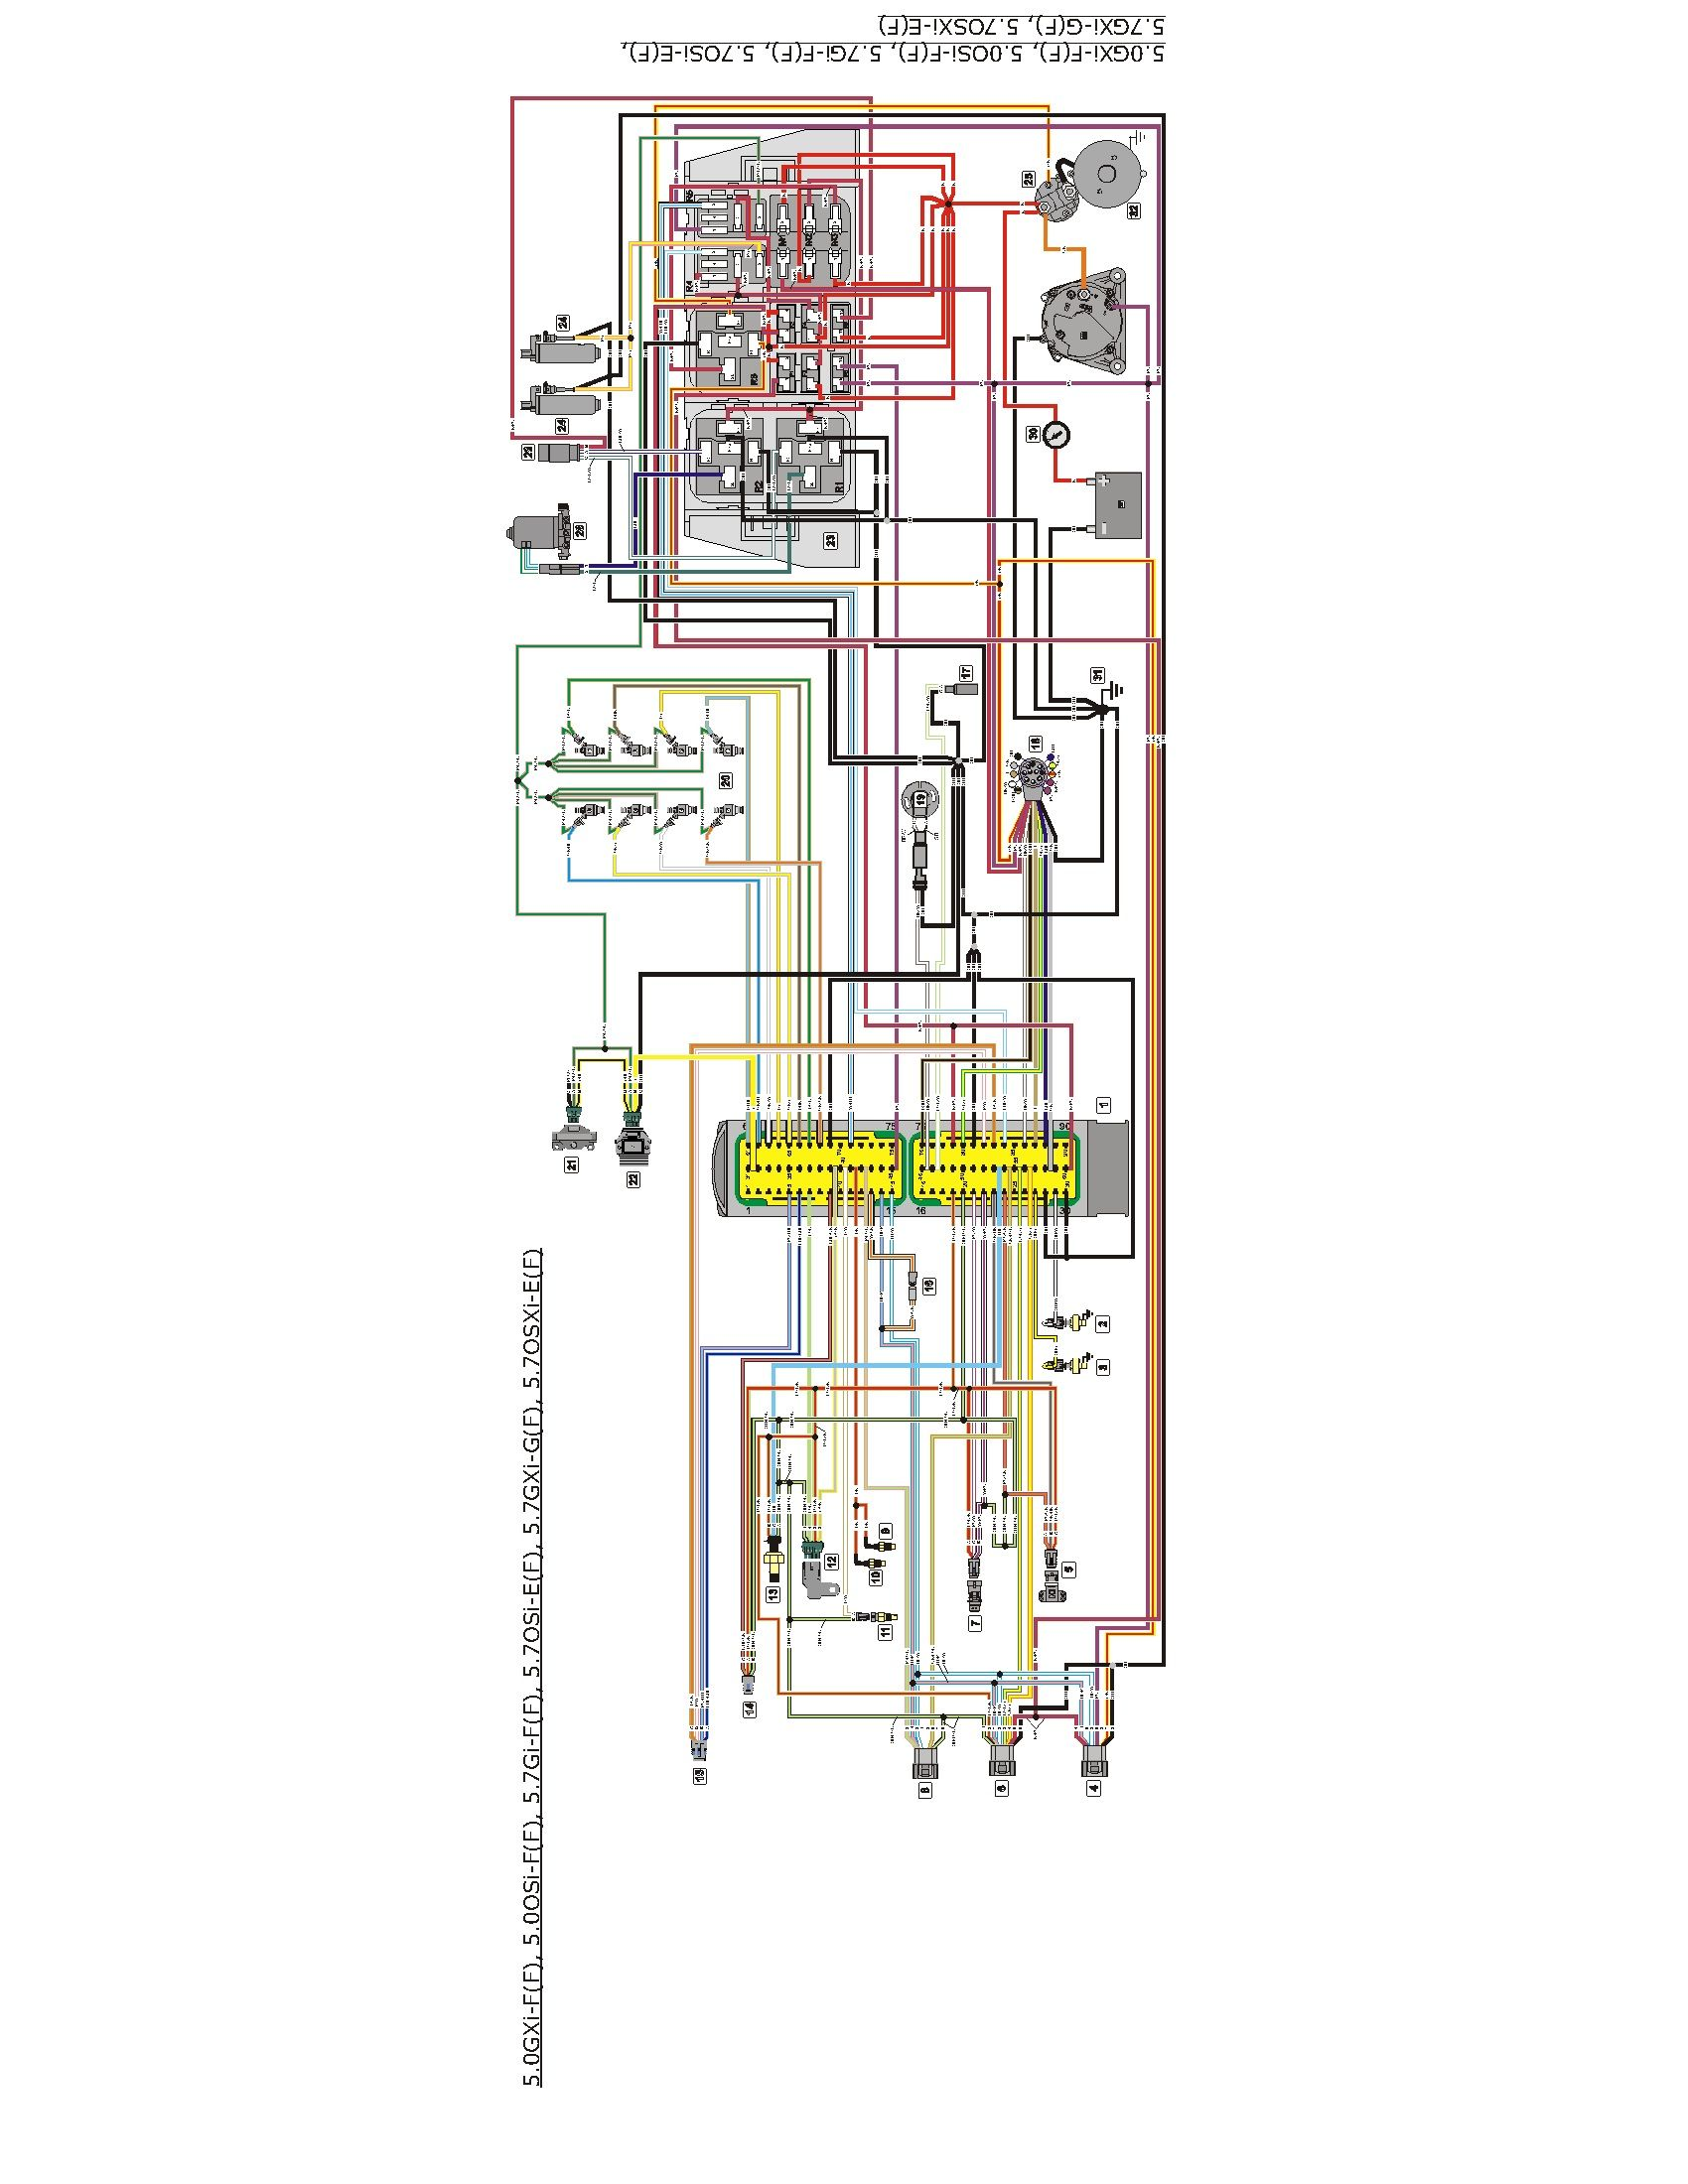 38e0106861e0fe47e508530985b32839 volvo penta 5 7 engine wiring diagram yate pinterest volvo  at reclaimingppi.co